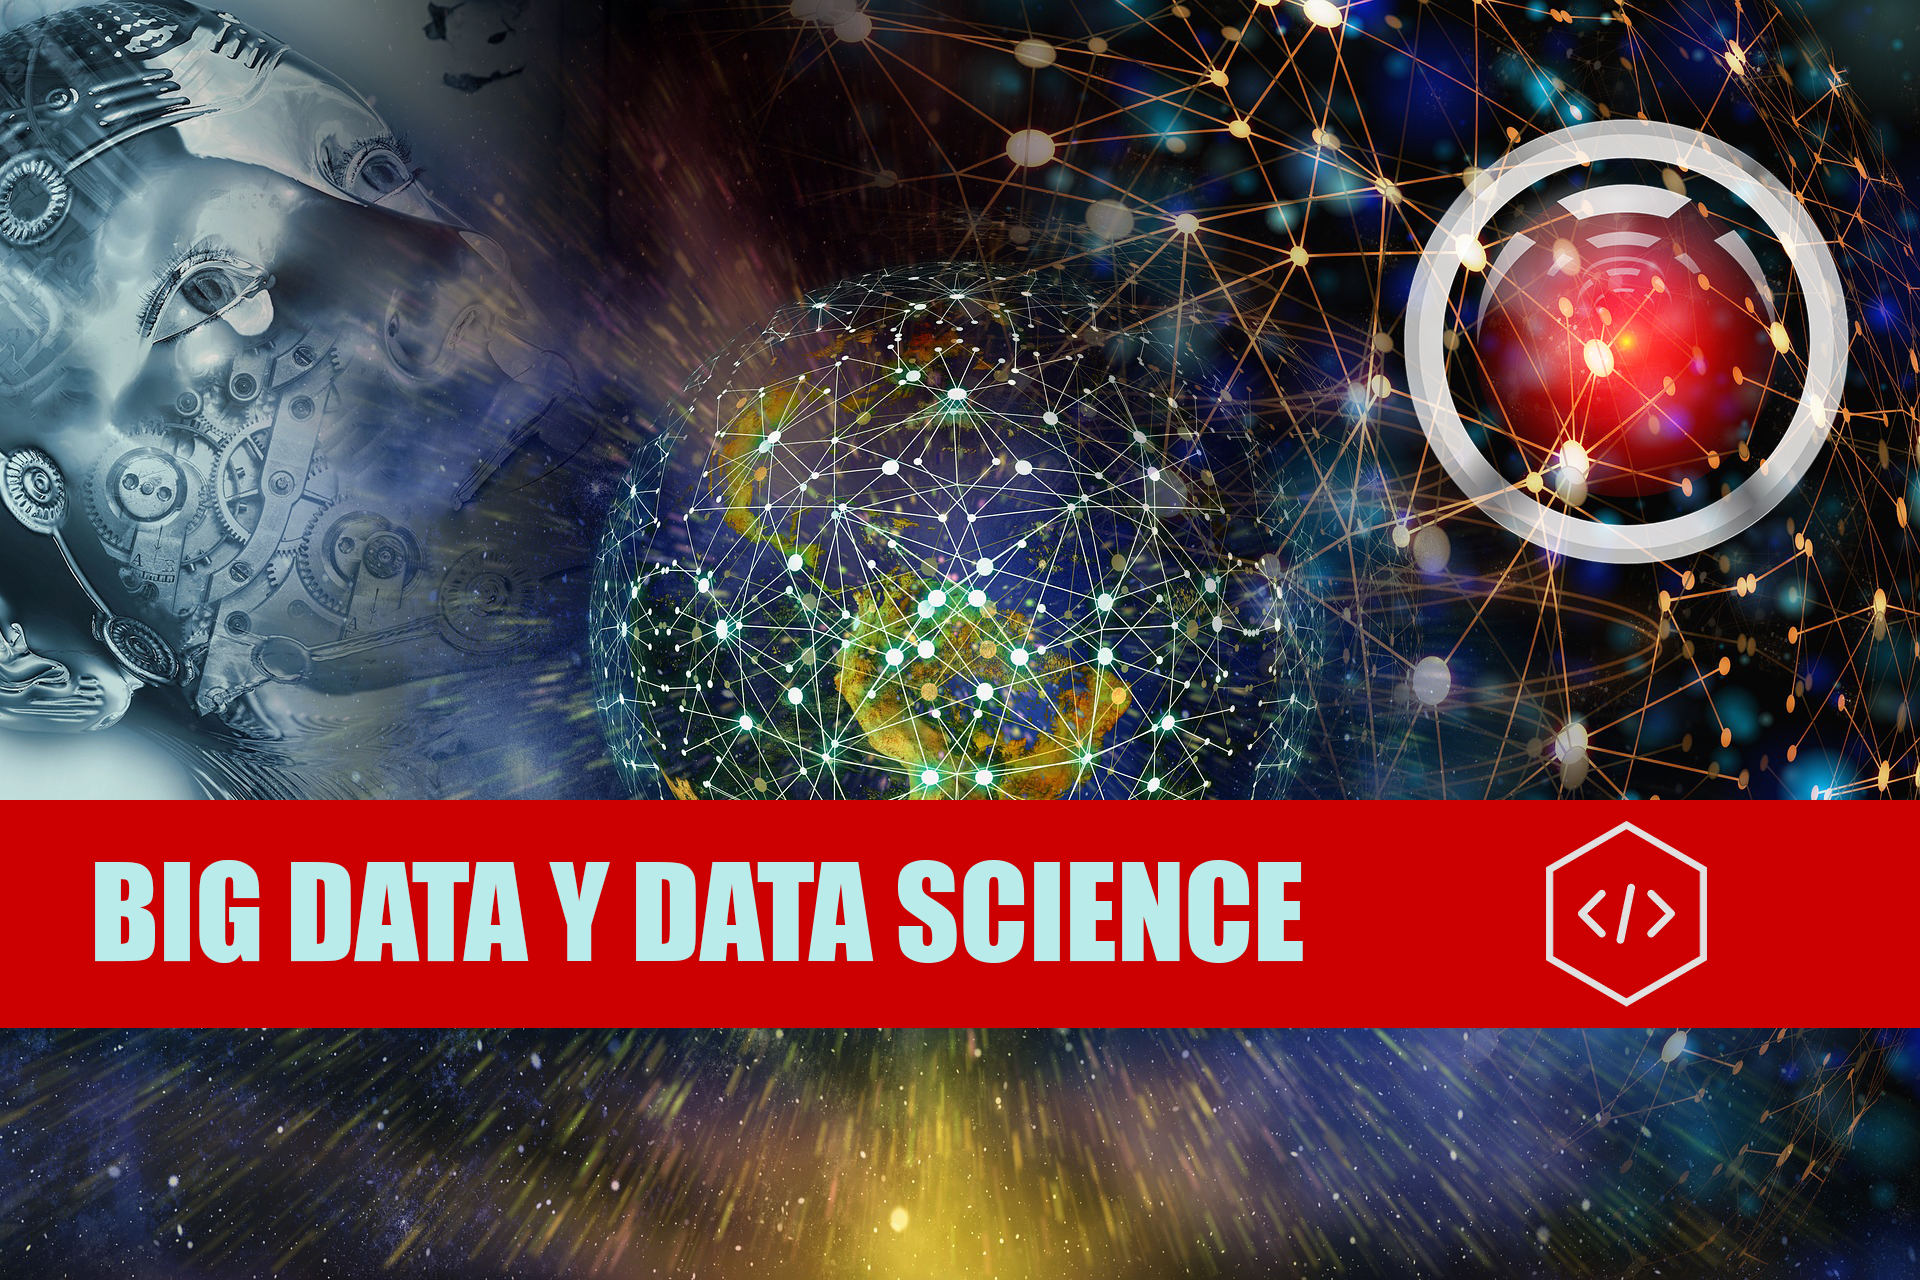 Máster en Big Data y Data Science Online - UNED